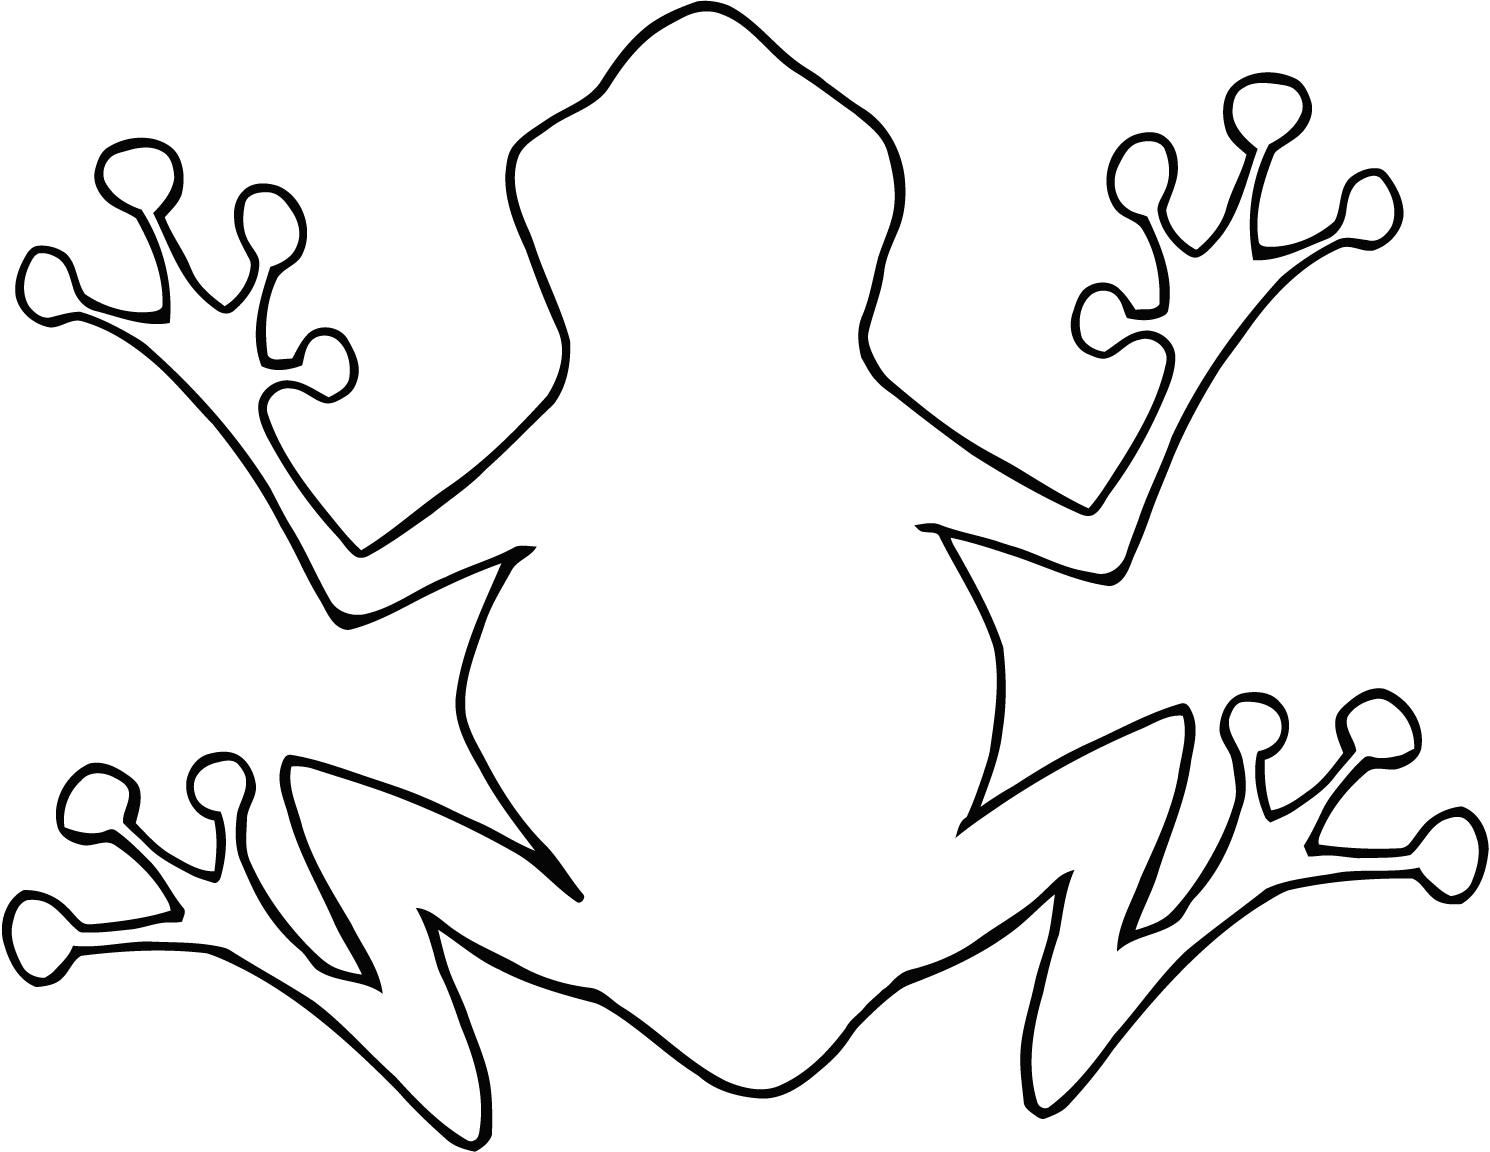 coloring sheet of cartoon outline frog for kids sc classroom